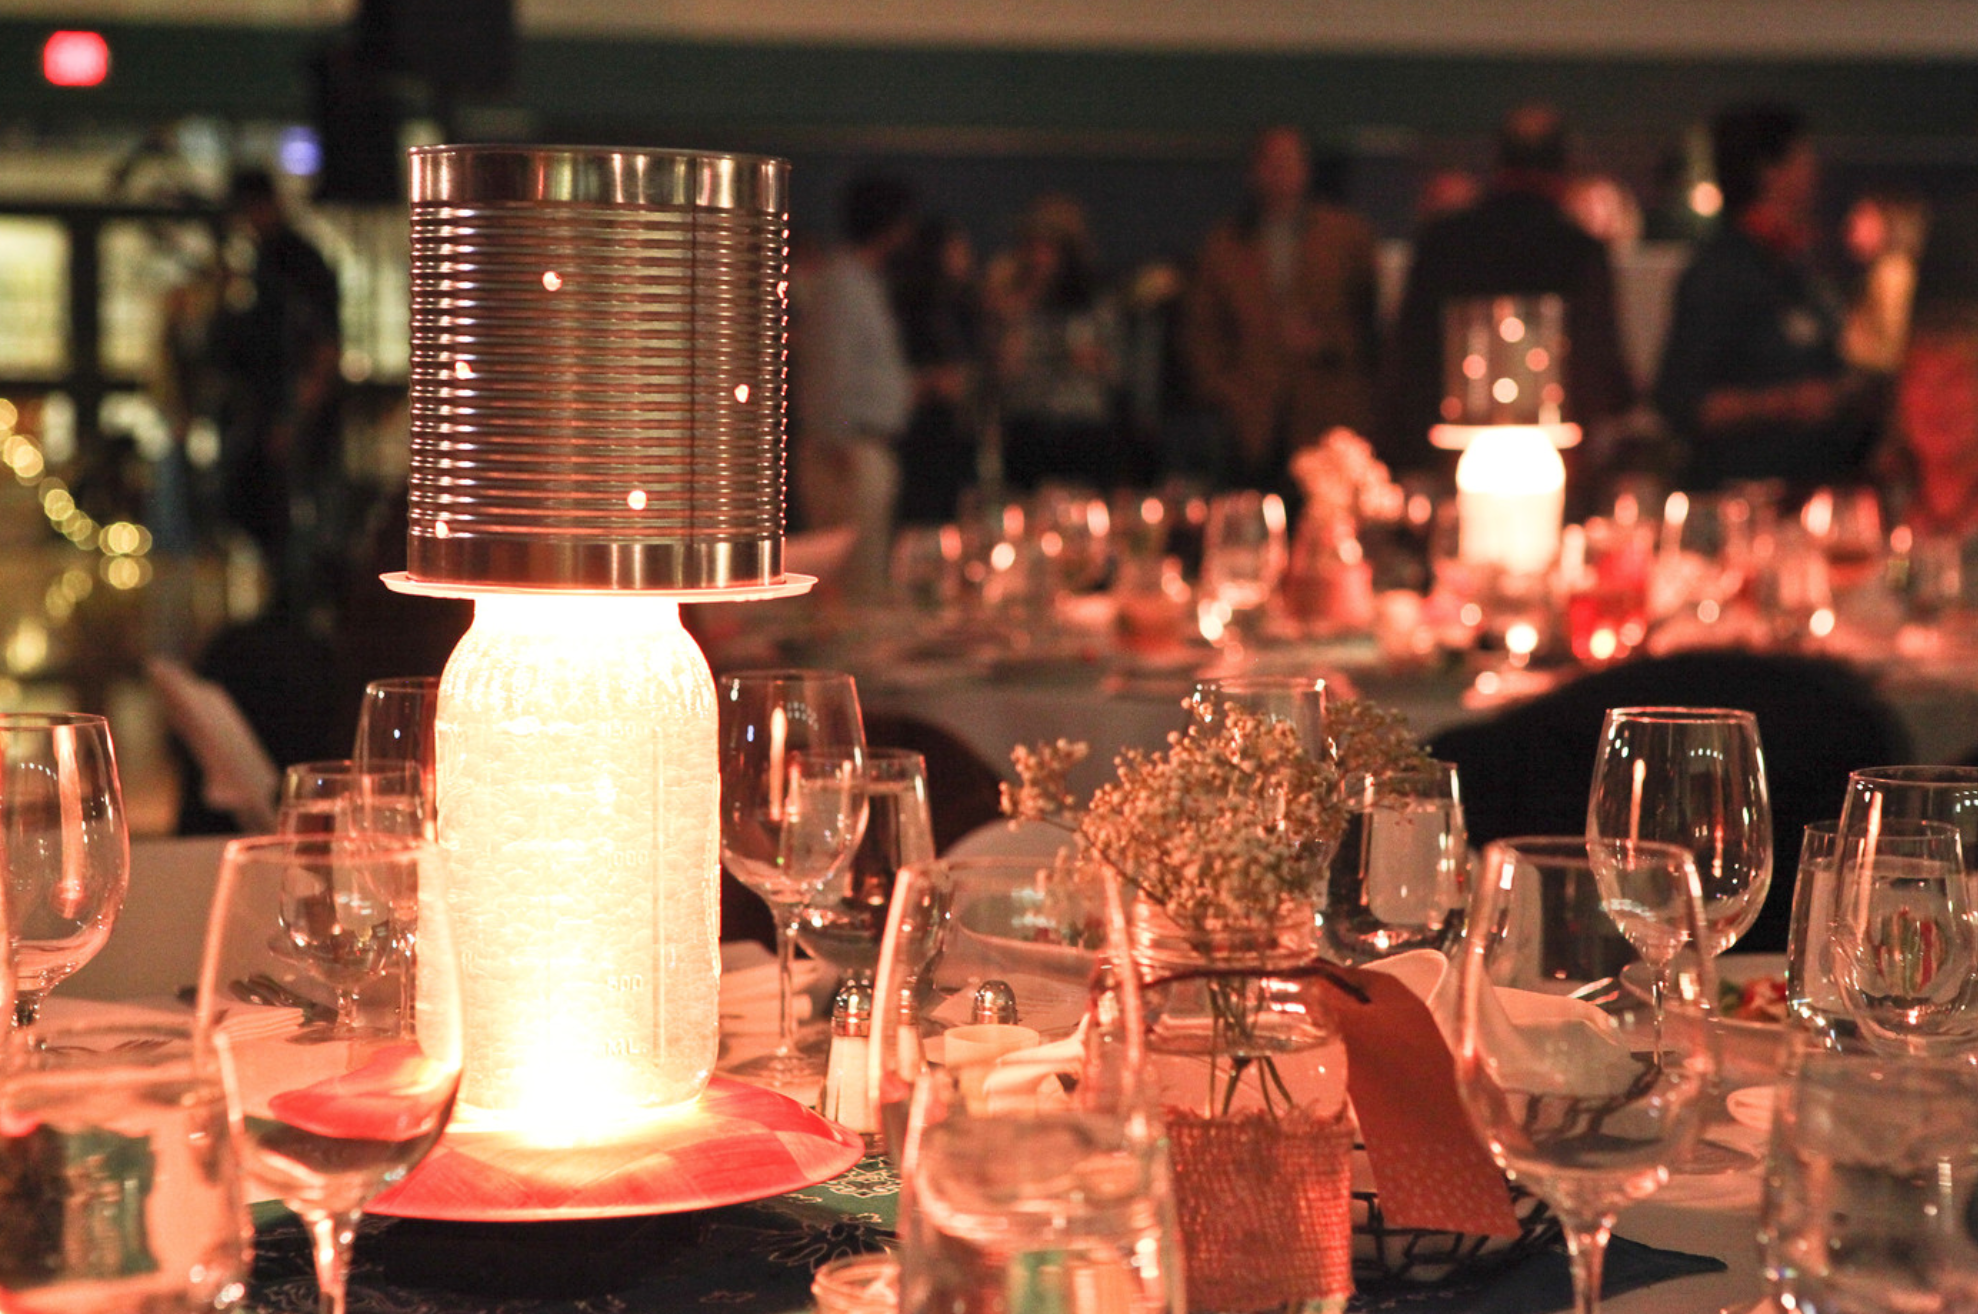 These centerpieces were created to match the Old West theme of the event, and are made with mason jars and used cans.  They are programmed to flicker like candles and give the dining room a warm glow.